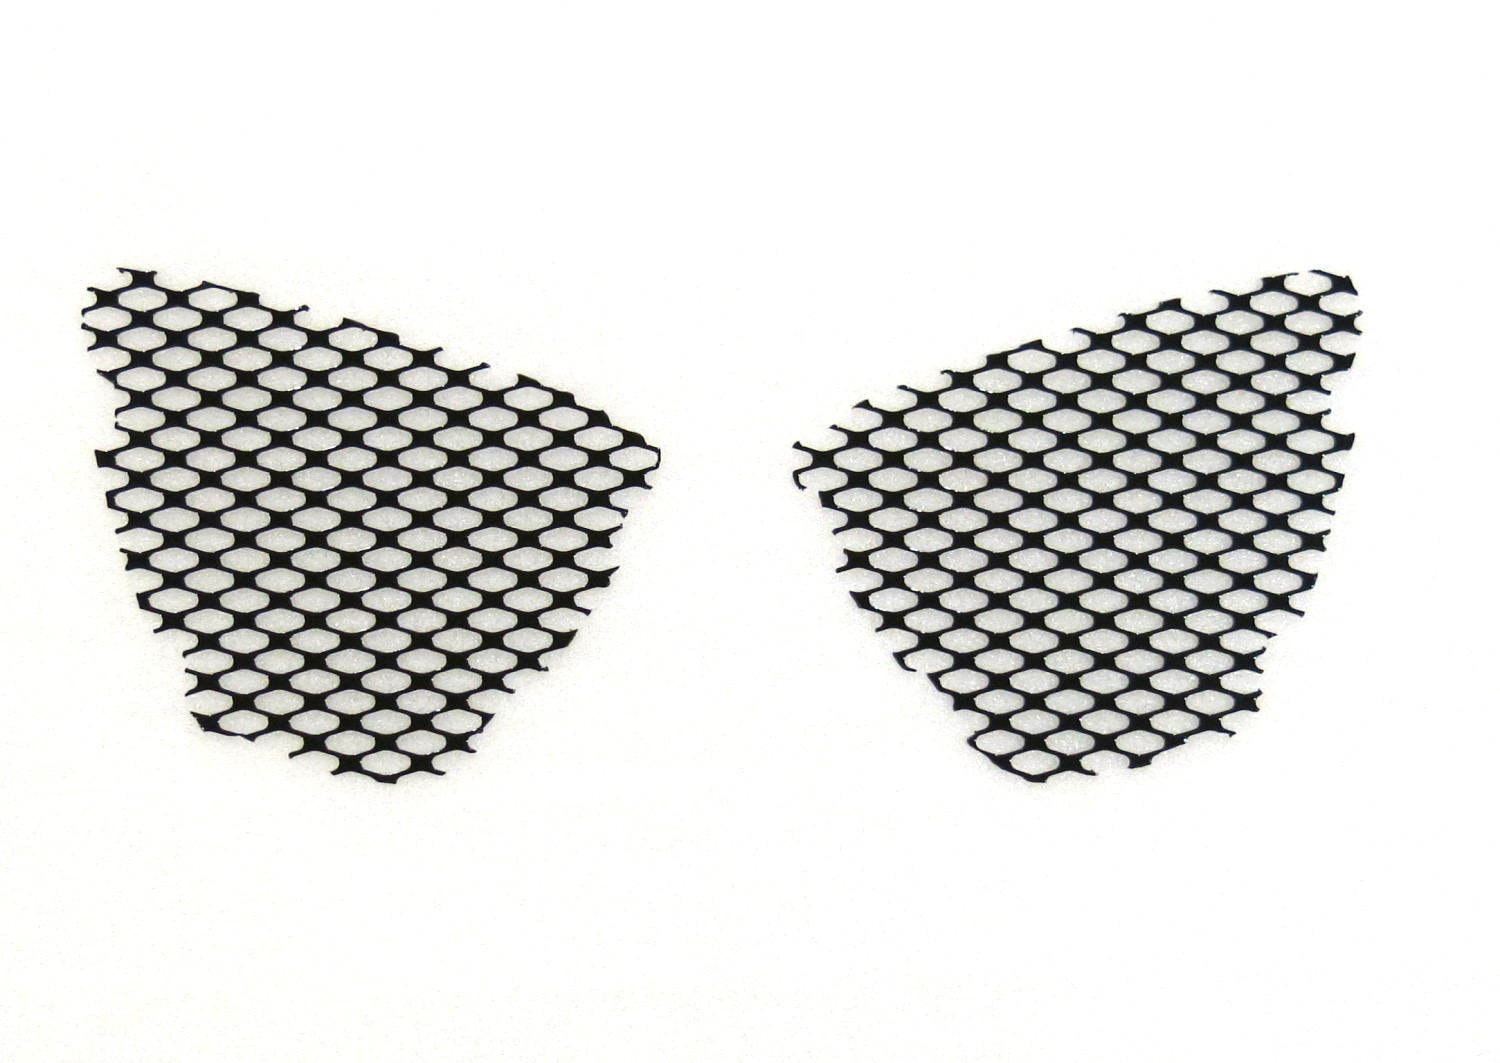 CCG PERF GT REAR REFLECTOR MESH GRILL GRILLE FOR 2012-17